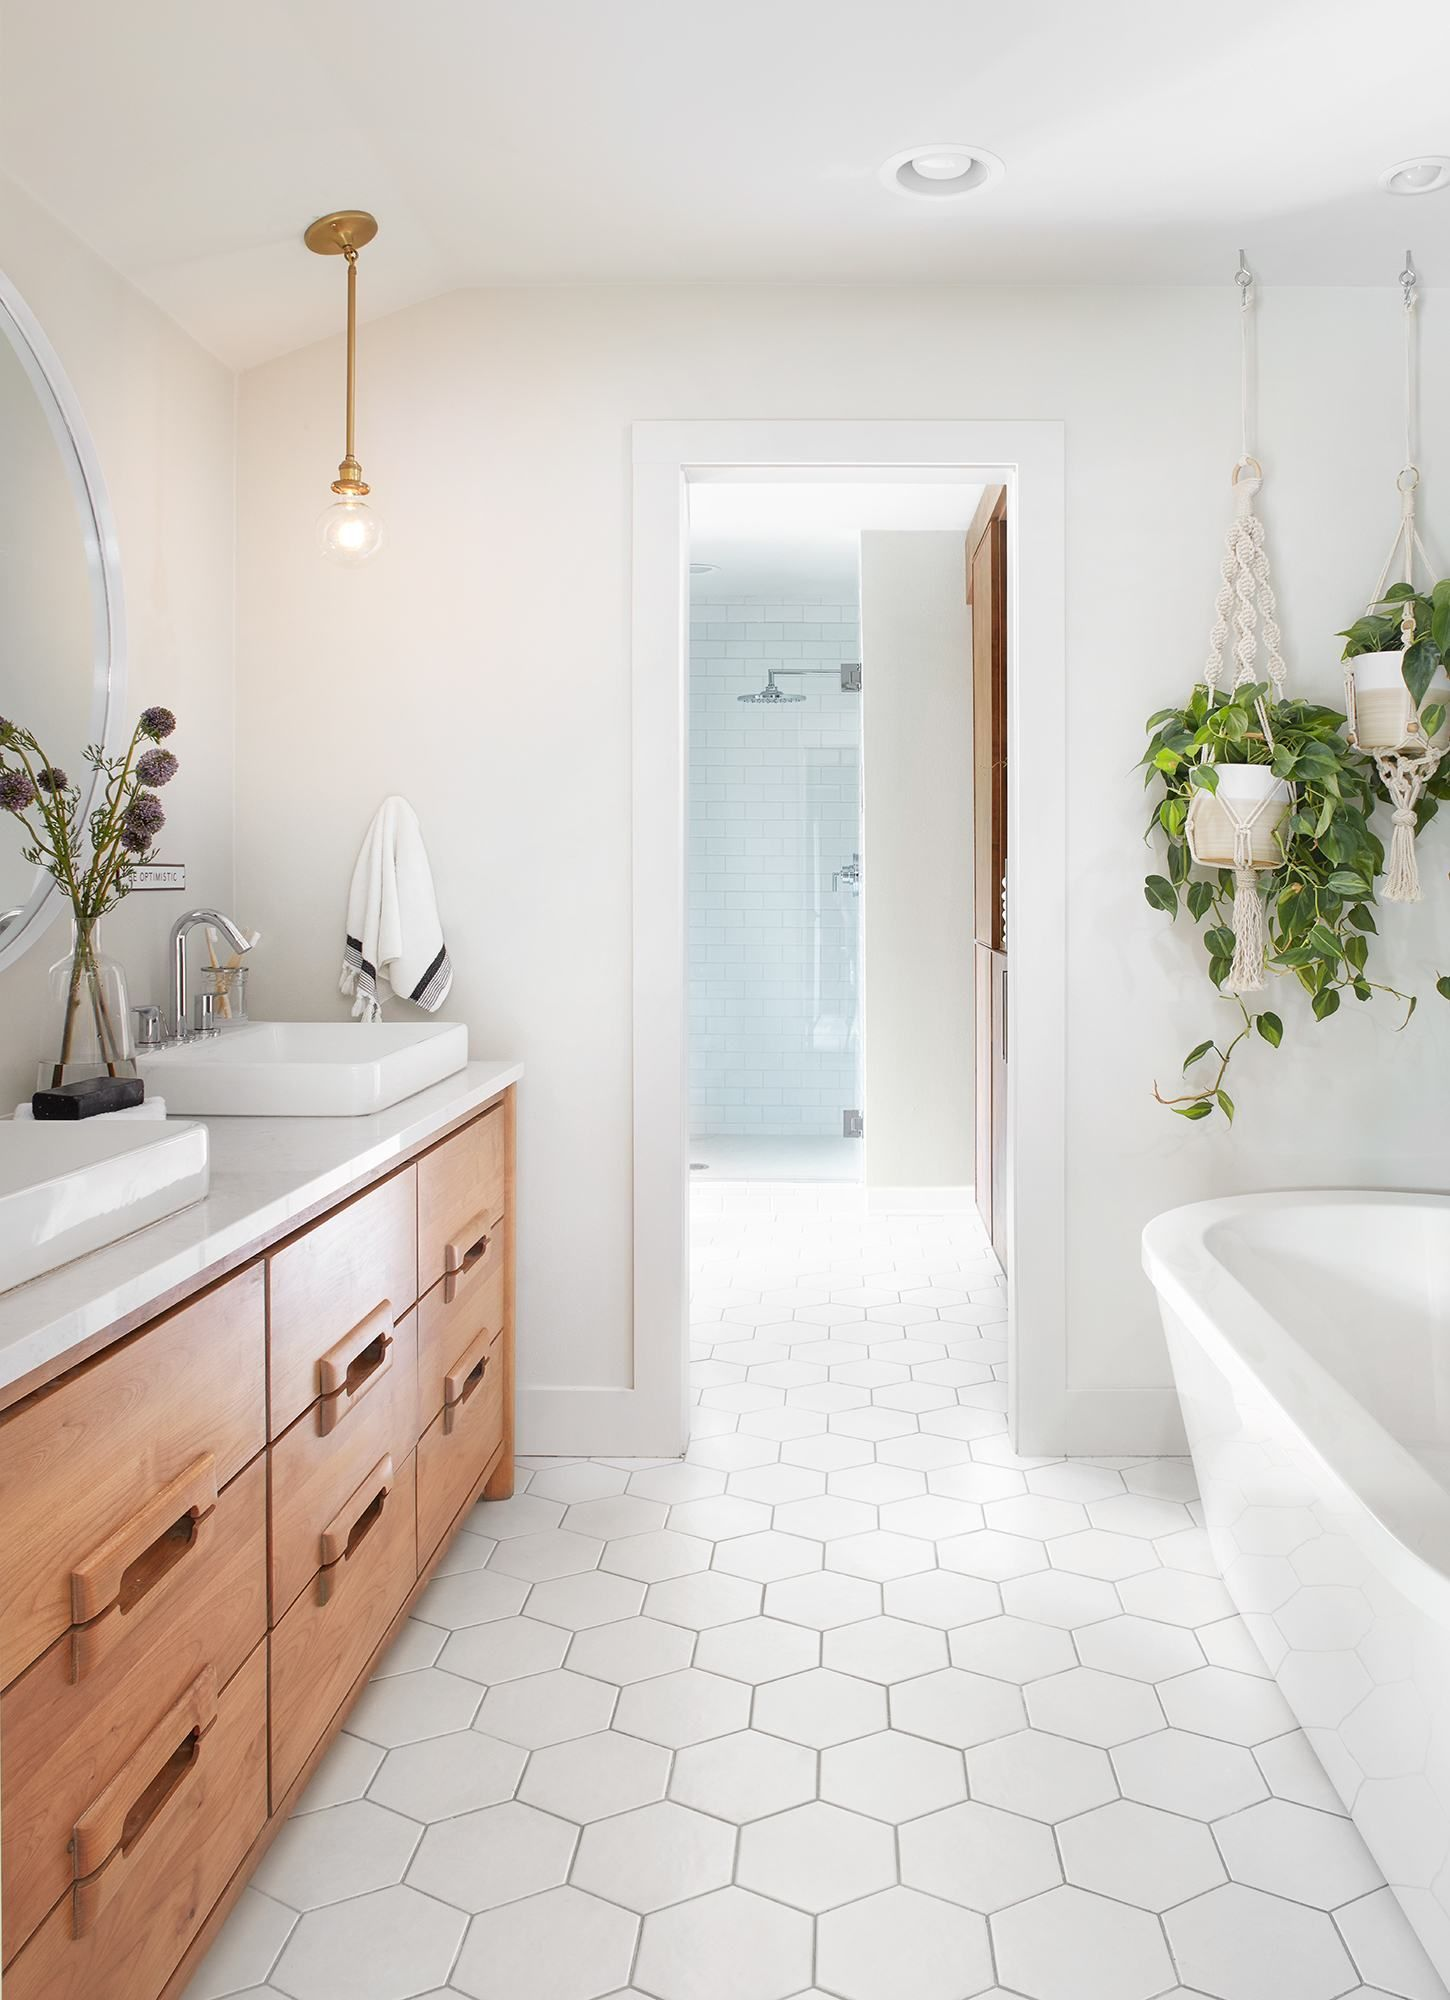 Attractive 20 Bathroom Tiles Ideas to Color-up Your Refreshing ...